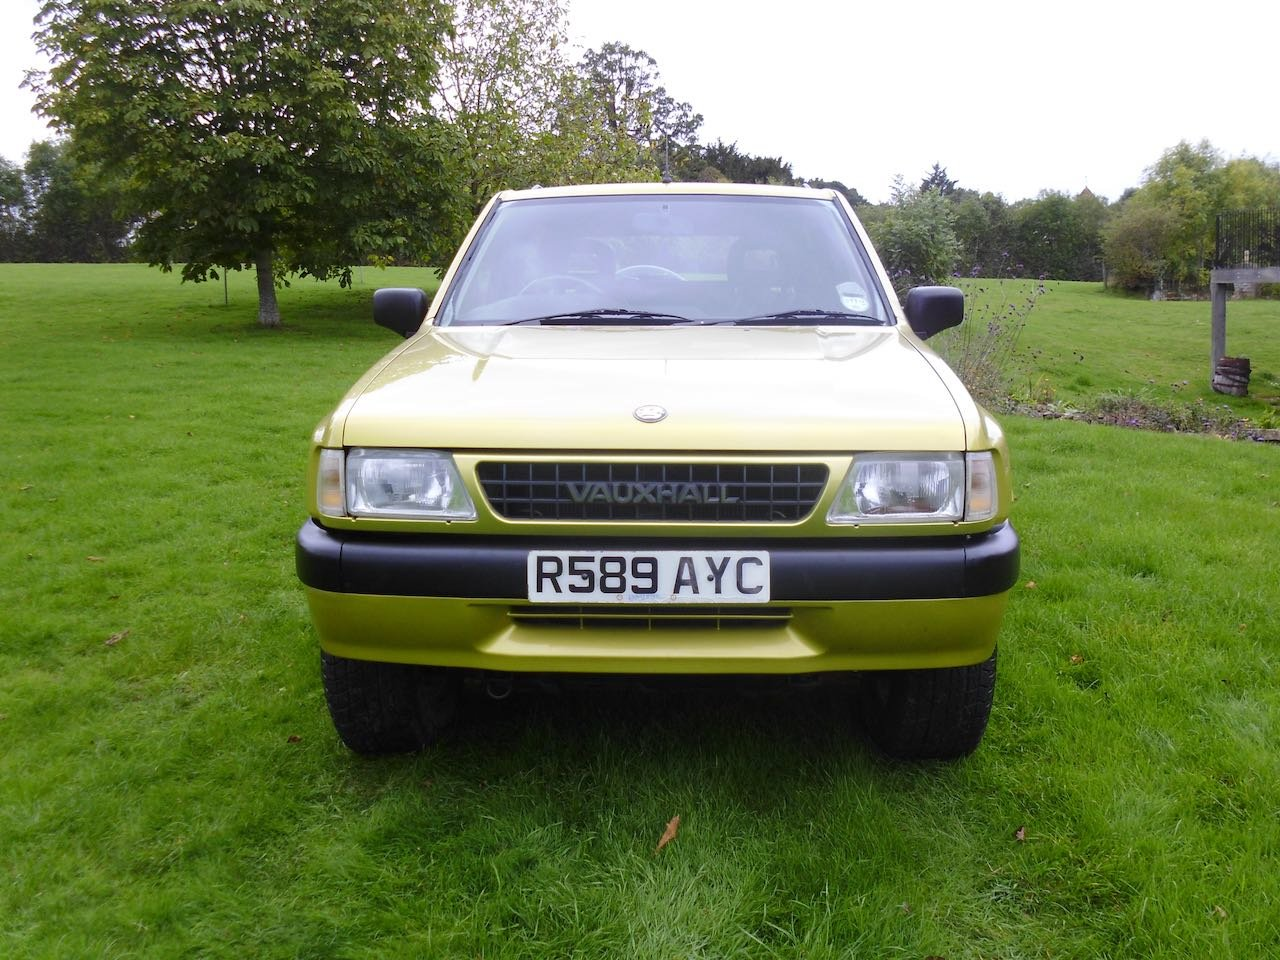 1997 Vauxhall Frontera sport S For Sale (picture 4 of 6)